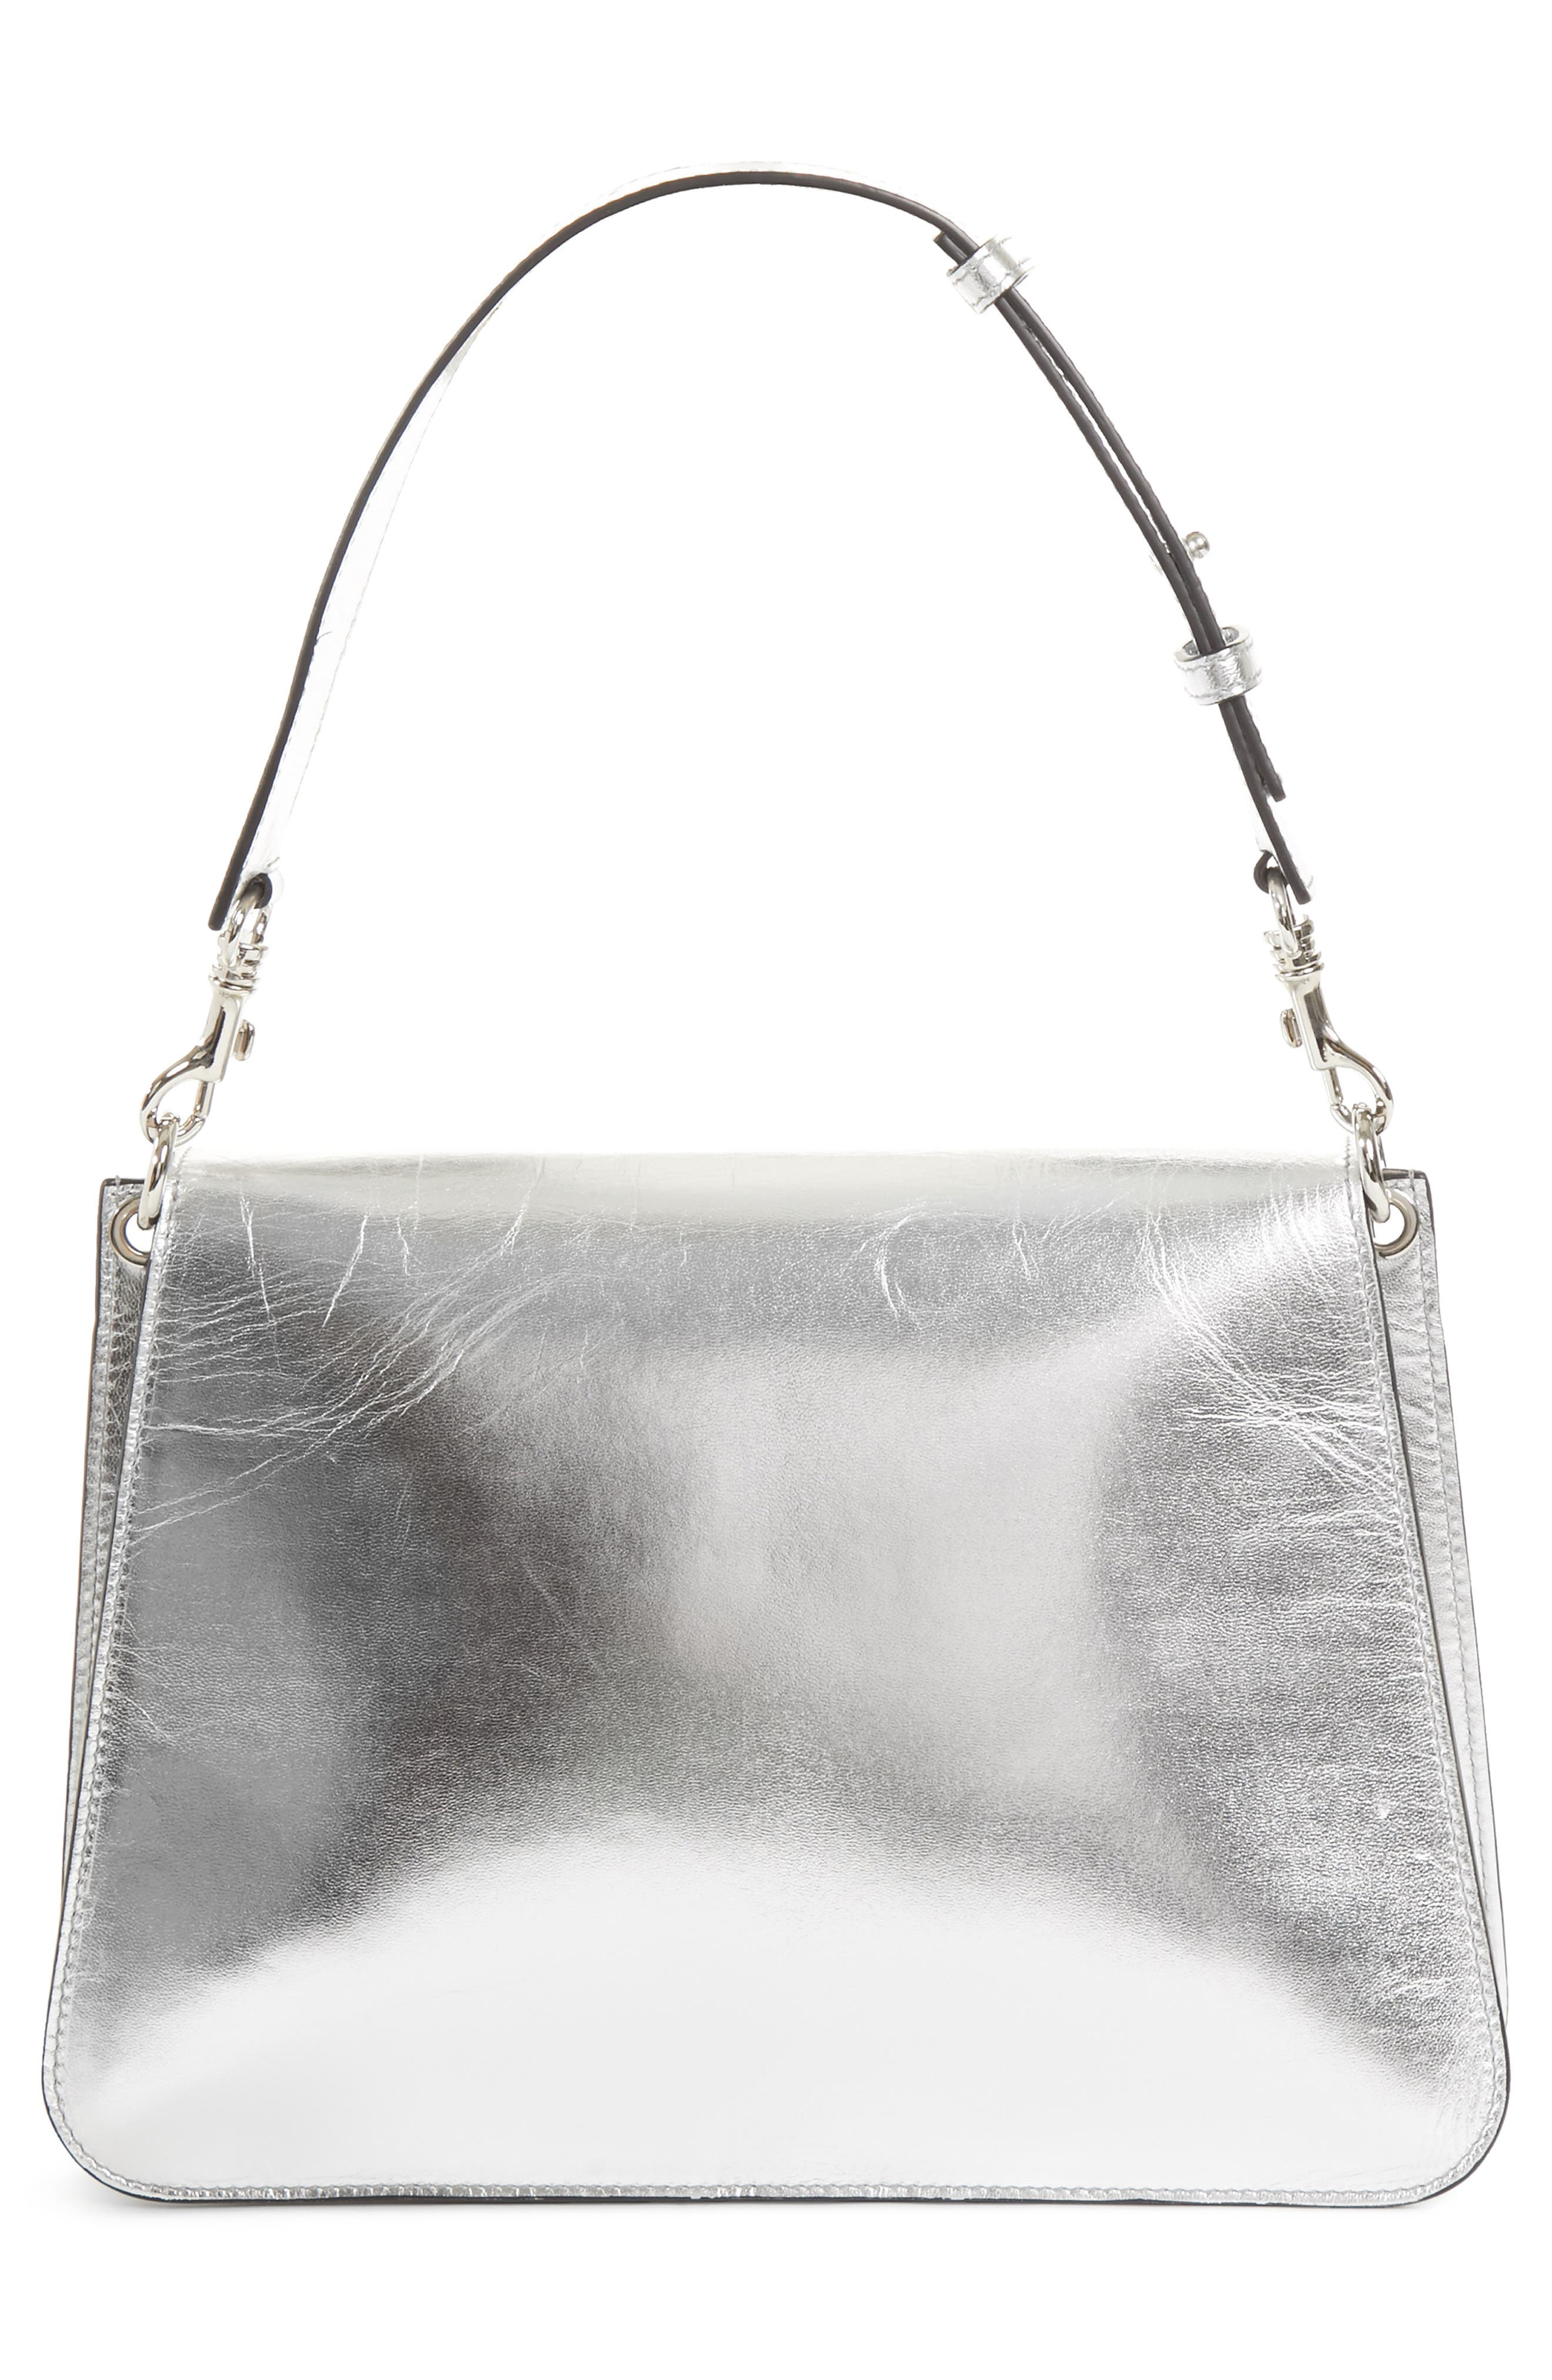 Alternate Image 3  - J.W.ANDERSON Medium Pierce Metallic Shoulder Bag